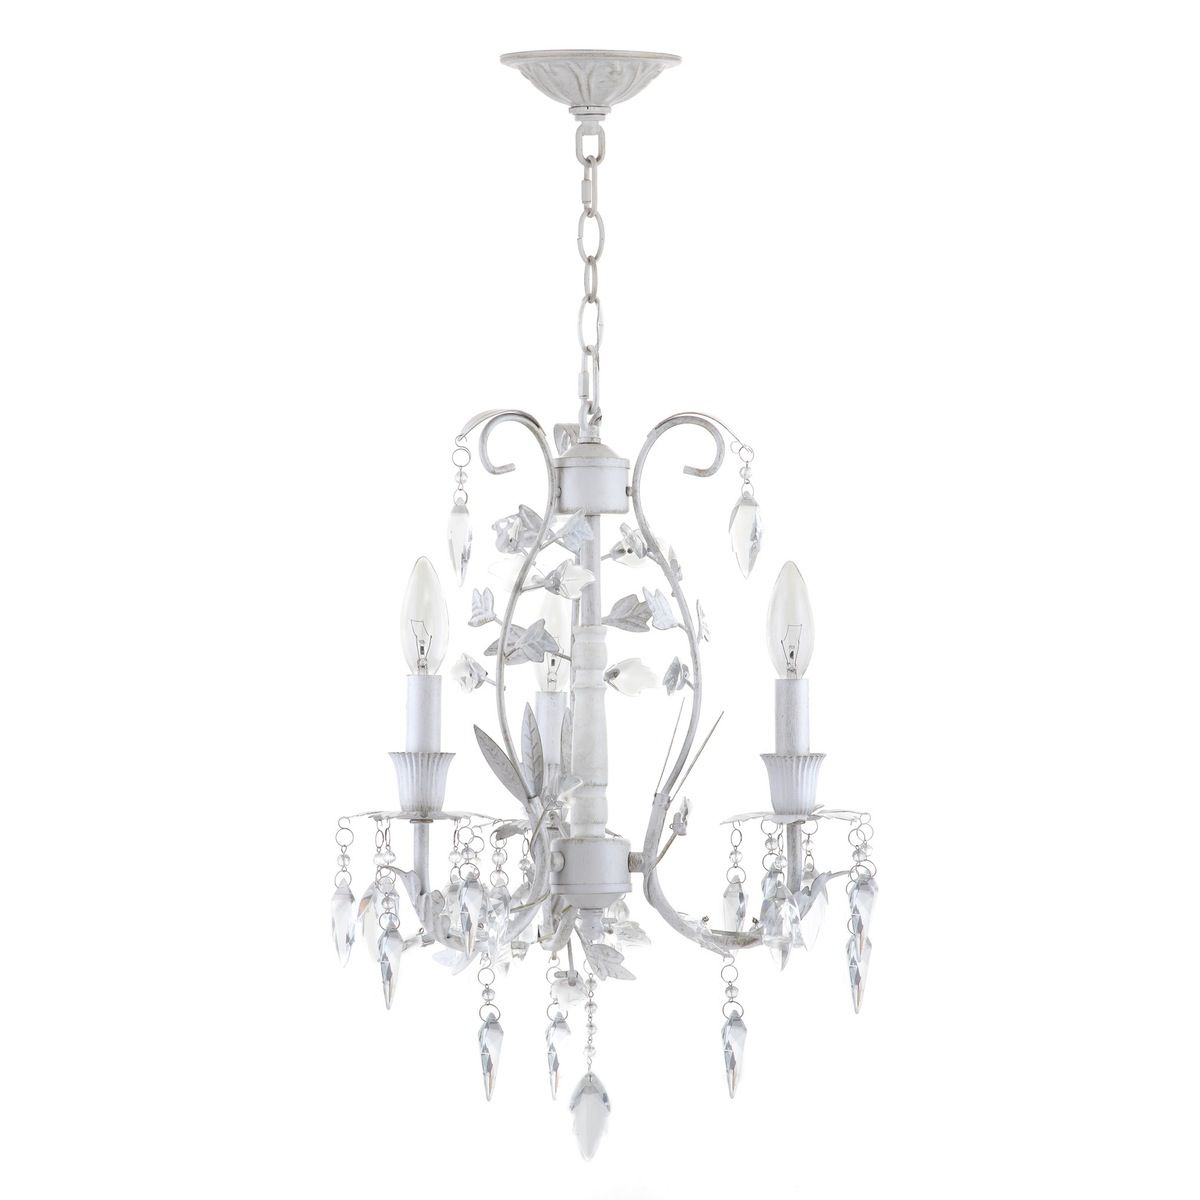 Safavieh Jasper Chandelier | Safavieh Lighting || Modish for Oriana 4-Light Single Geometric Chandeliers (Image 27 of 30)